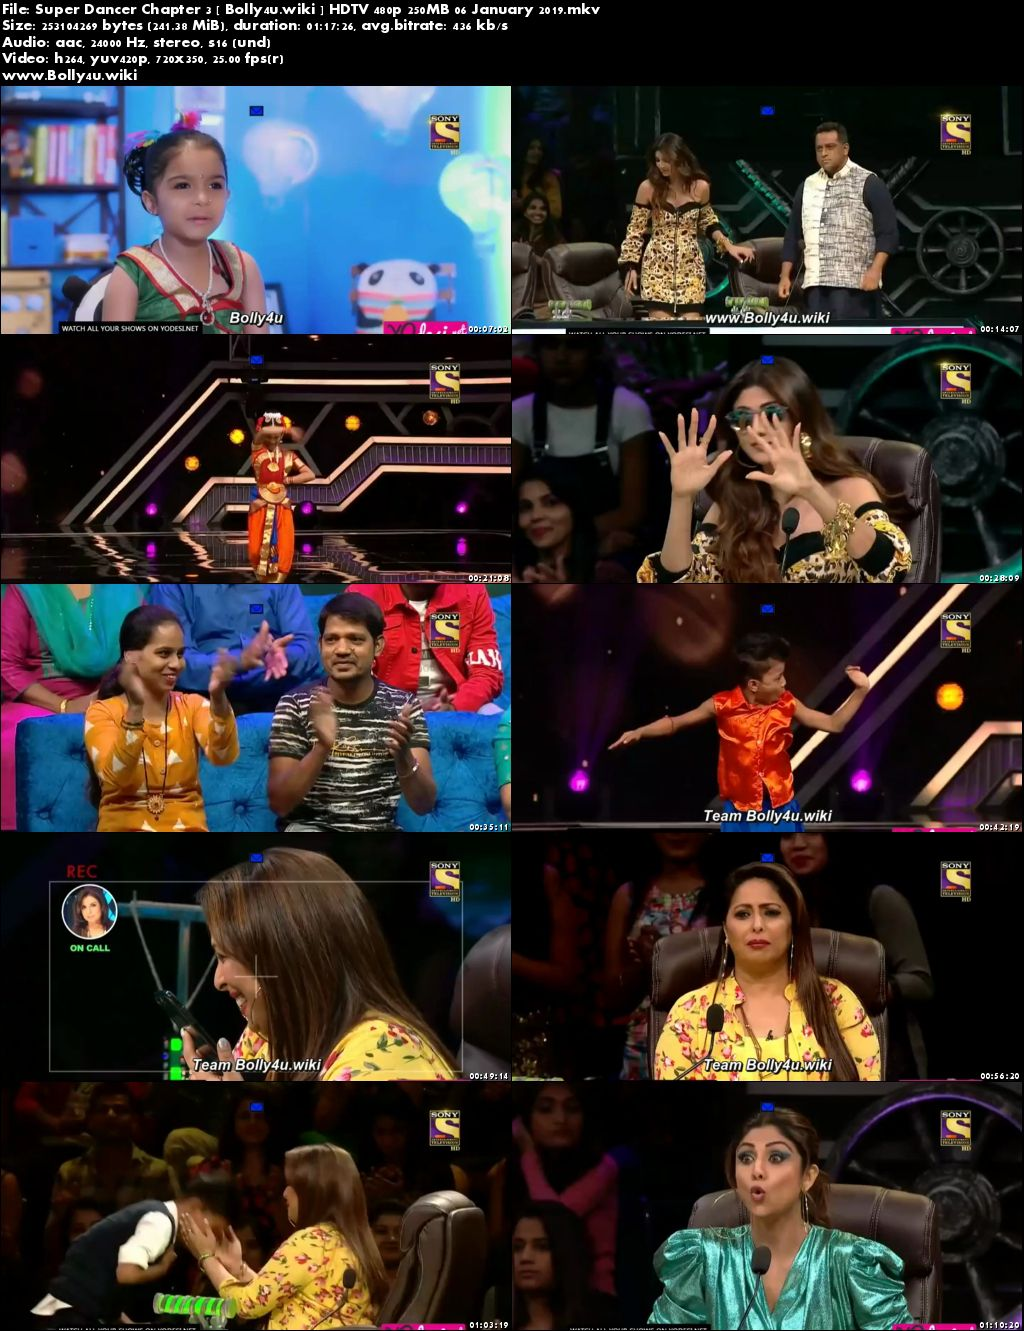 Super Dancer Chapter 3 HDTV 480p 250MB 06 January 2019 Download